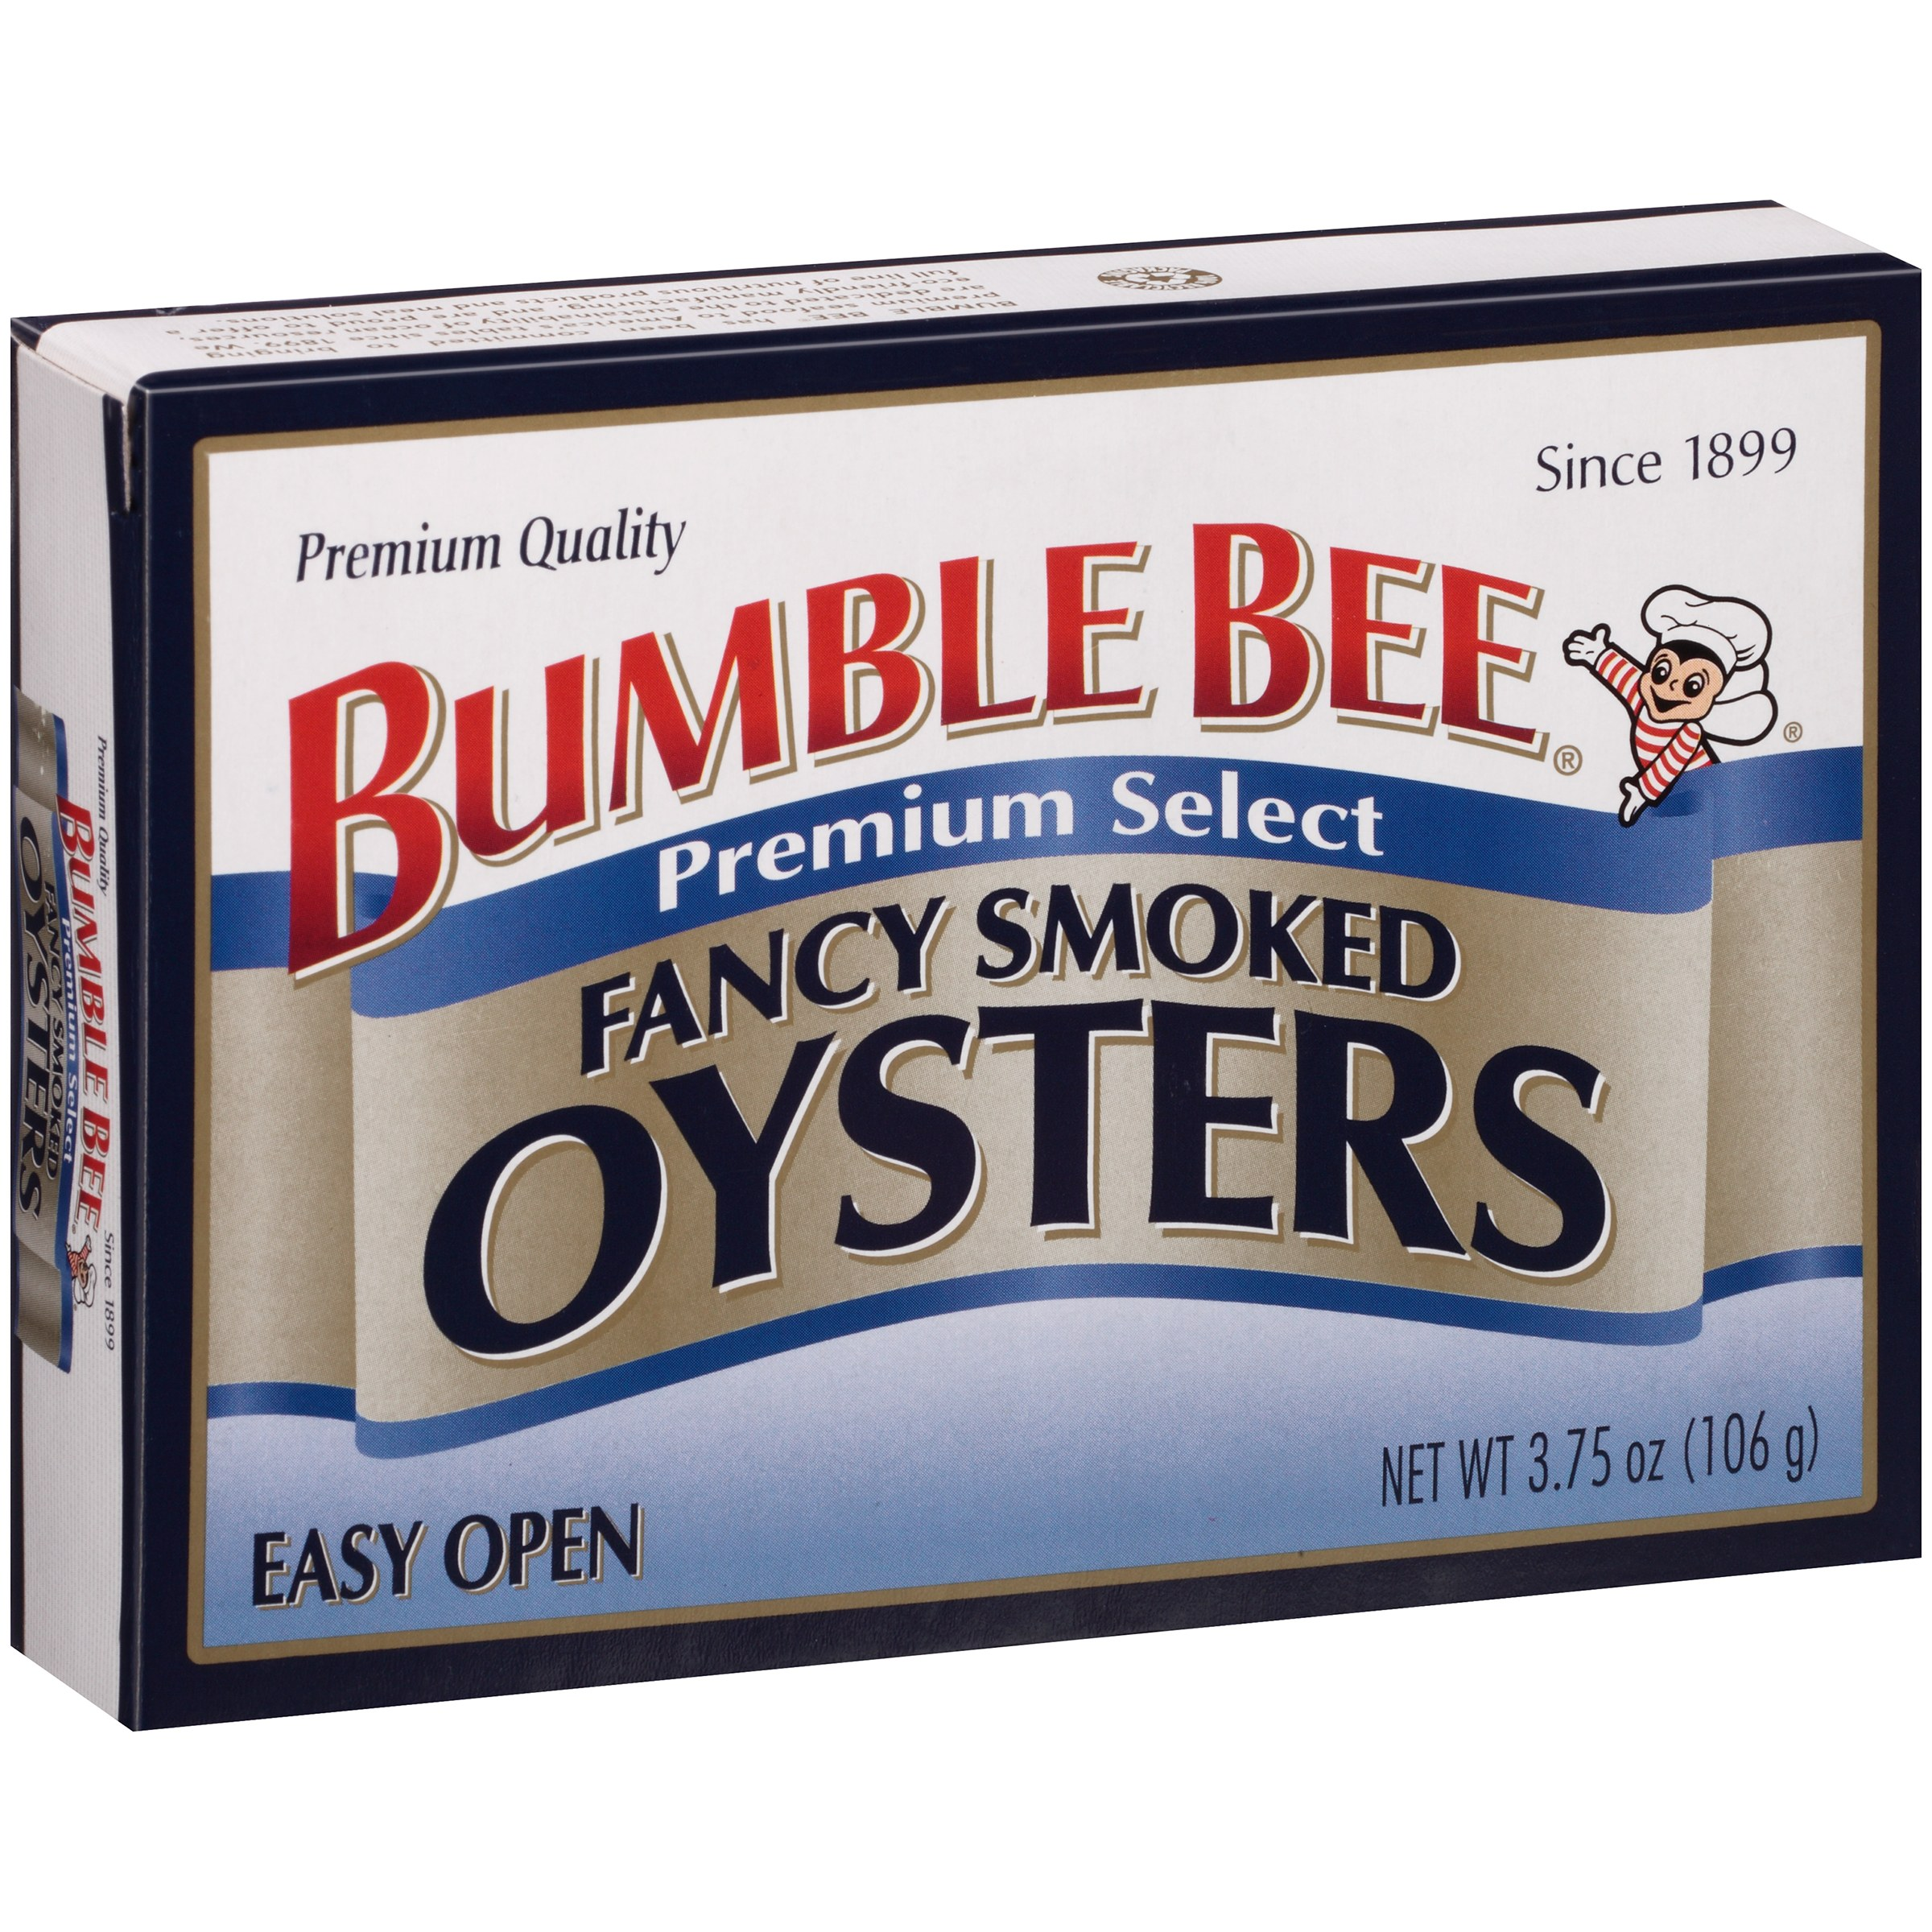 Bumble Bee Premium Select Fancy Smoked Oysters, 3.75 OZ by Bumble Bee Seafoods